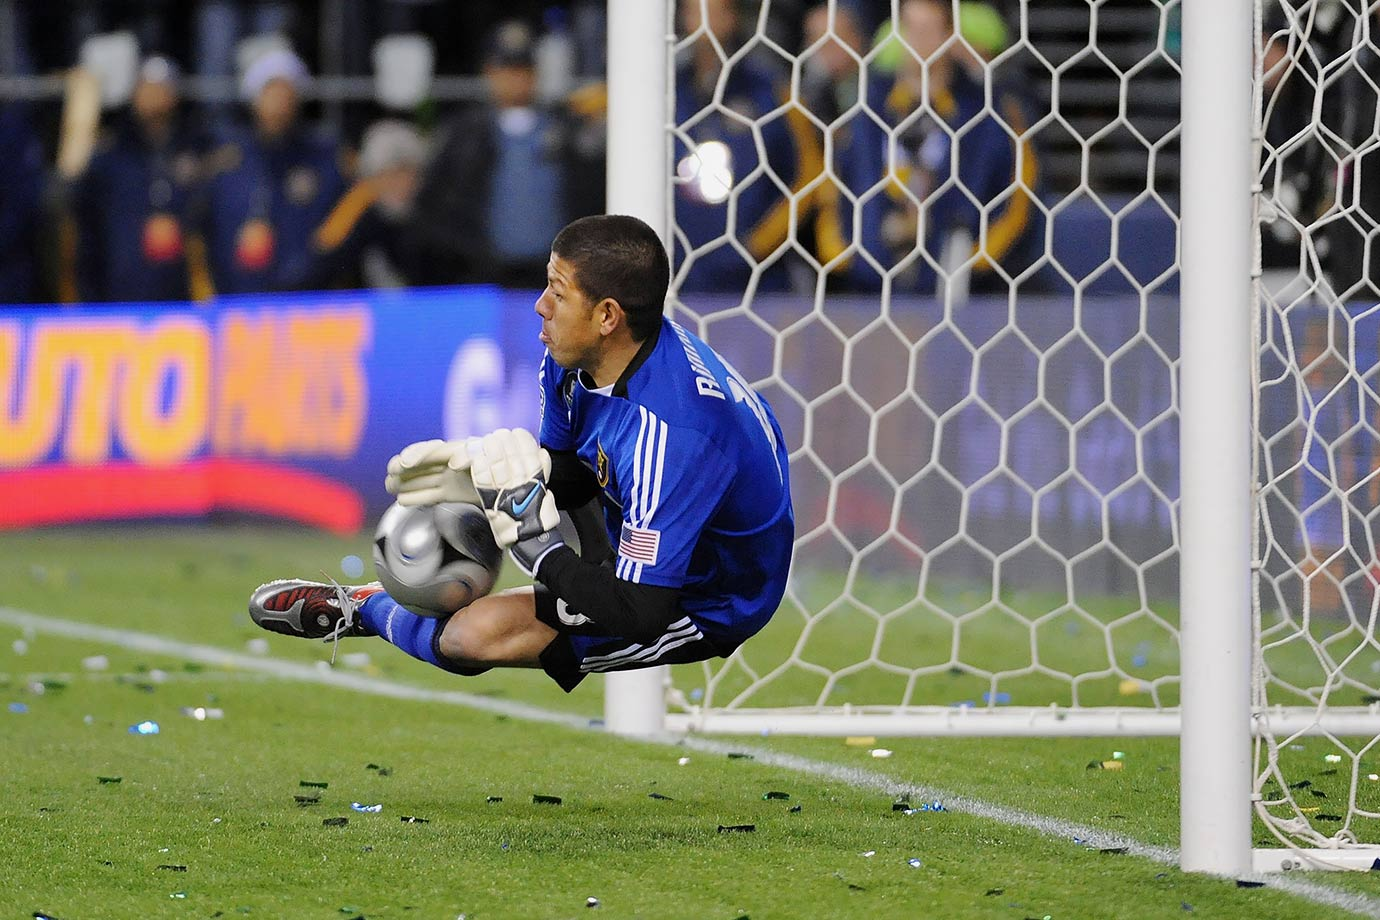 <p>2009 — Real Salt Lake (beat LA Galaxy in penalty kicks after 1-1 draw)</p>